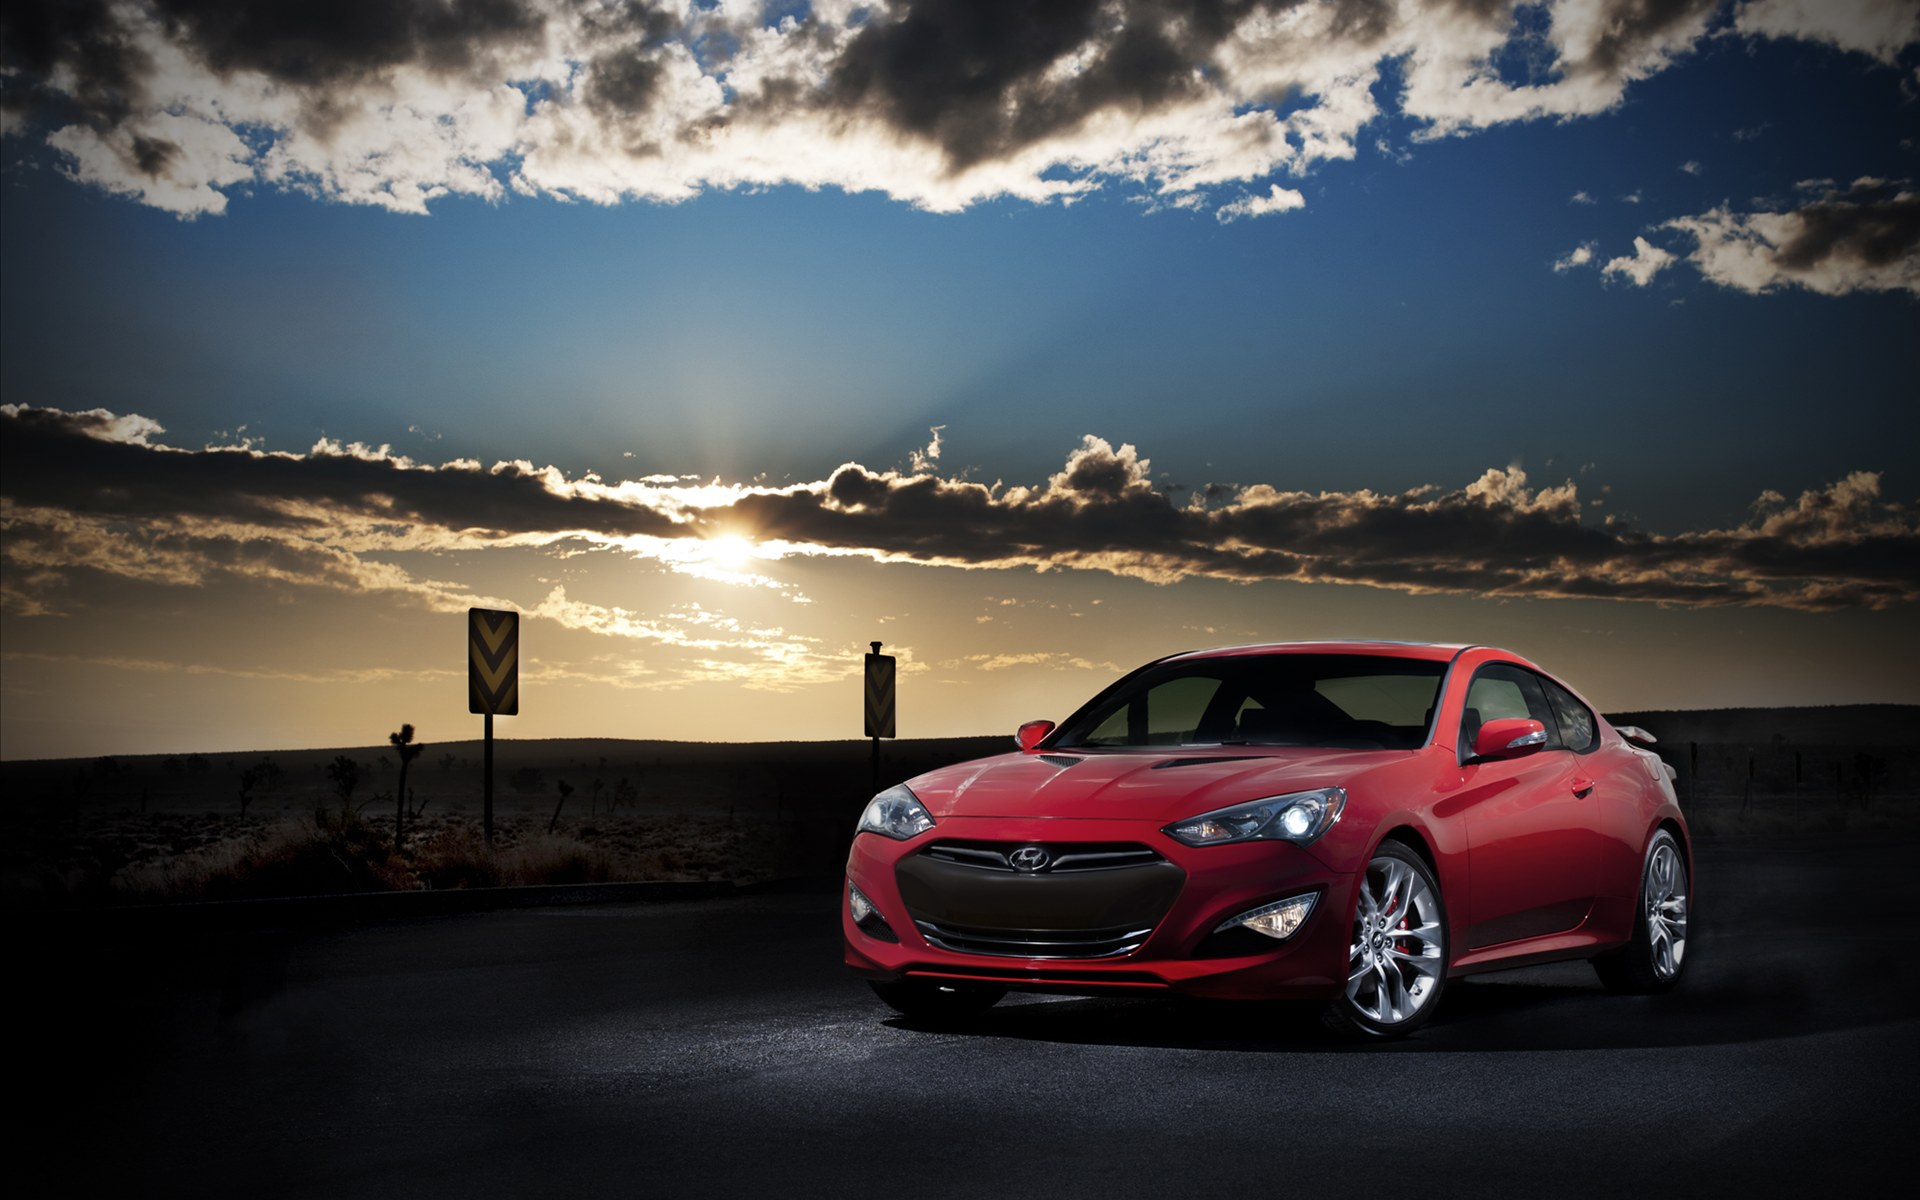 2013 hyundai genesis coupe 2 wallpaper hd car wallpapers id 2426. Black Bedroom Furniture Sets. Home Design Ideas